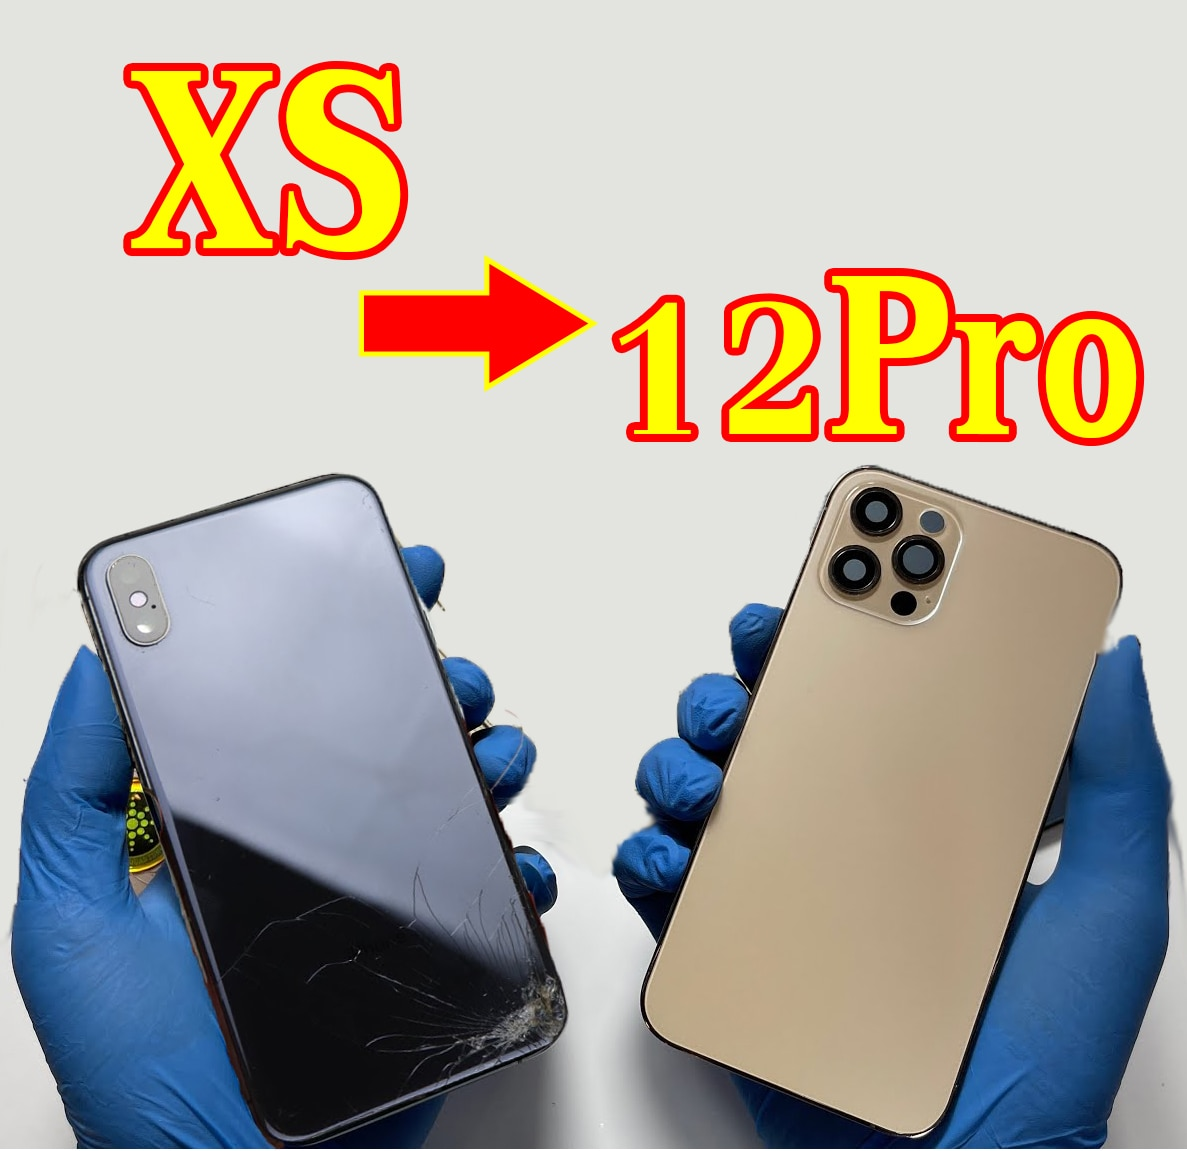 Promo OEM Chassis For iPhone Xs upgrage to iPhone 12Pro Housing,for iPhone Xs Housing like 12,Cover for iPhone xs.Replacement parts